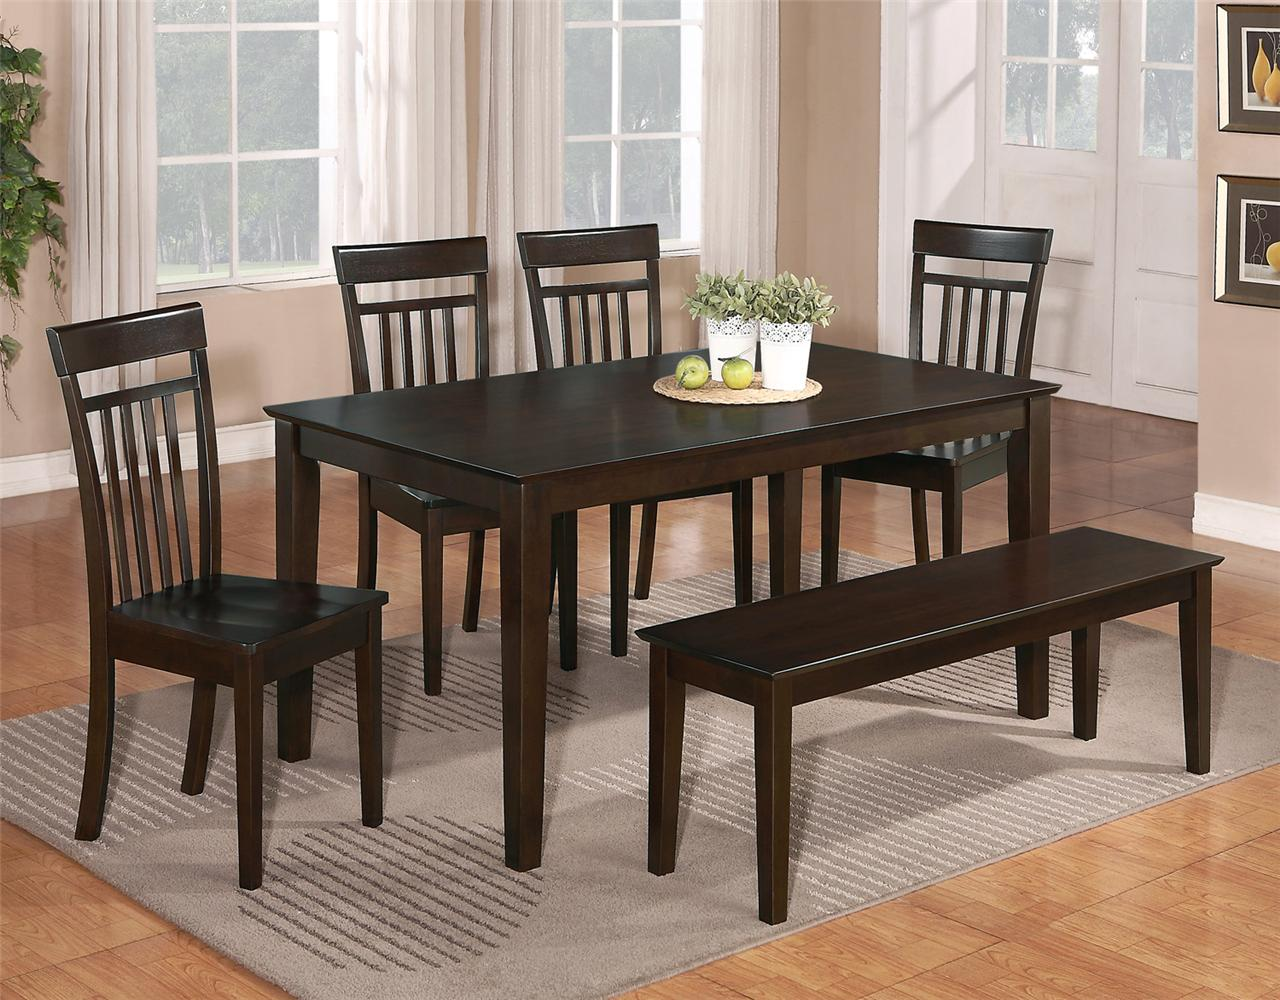 6 pc dinette kitchen dining room set table w 4 wood chair for Wood dining table set